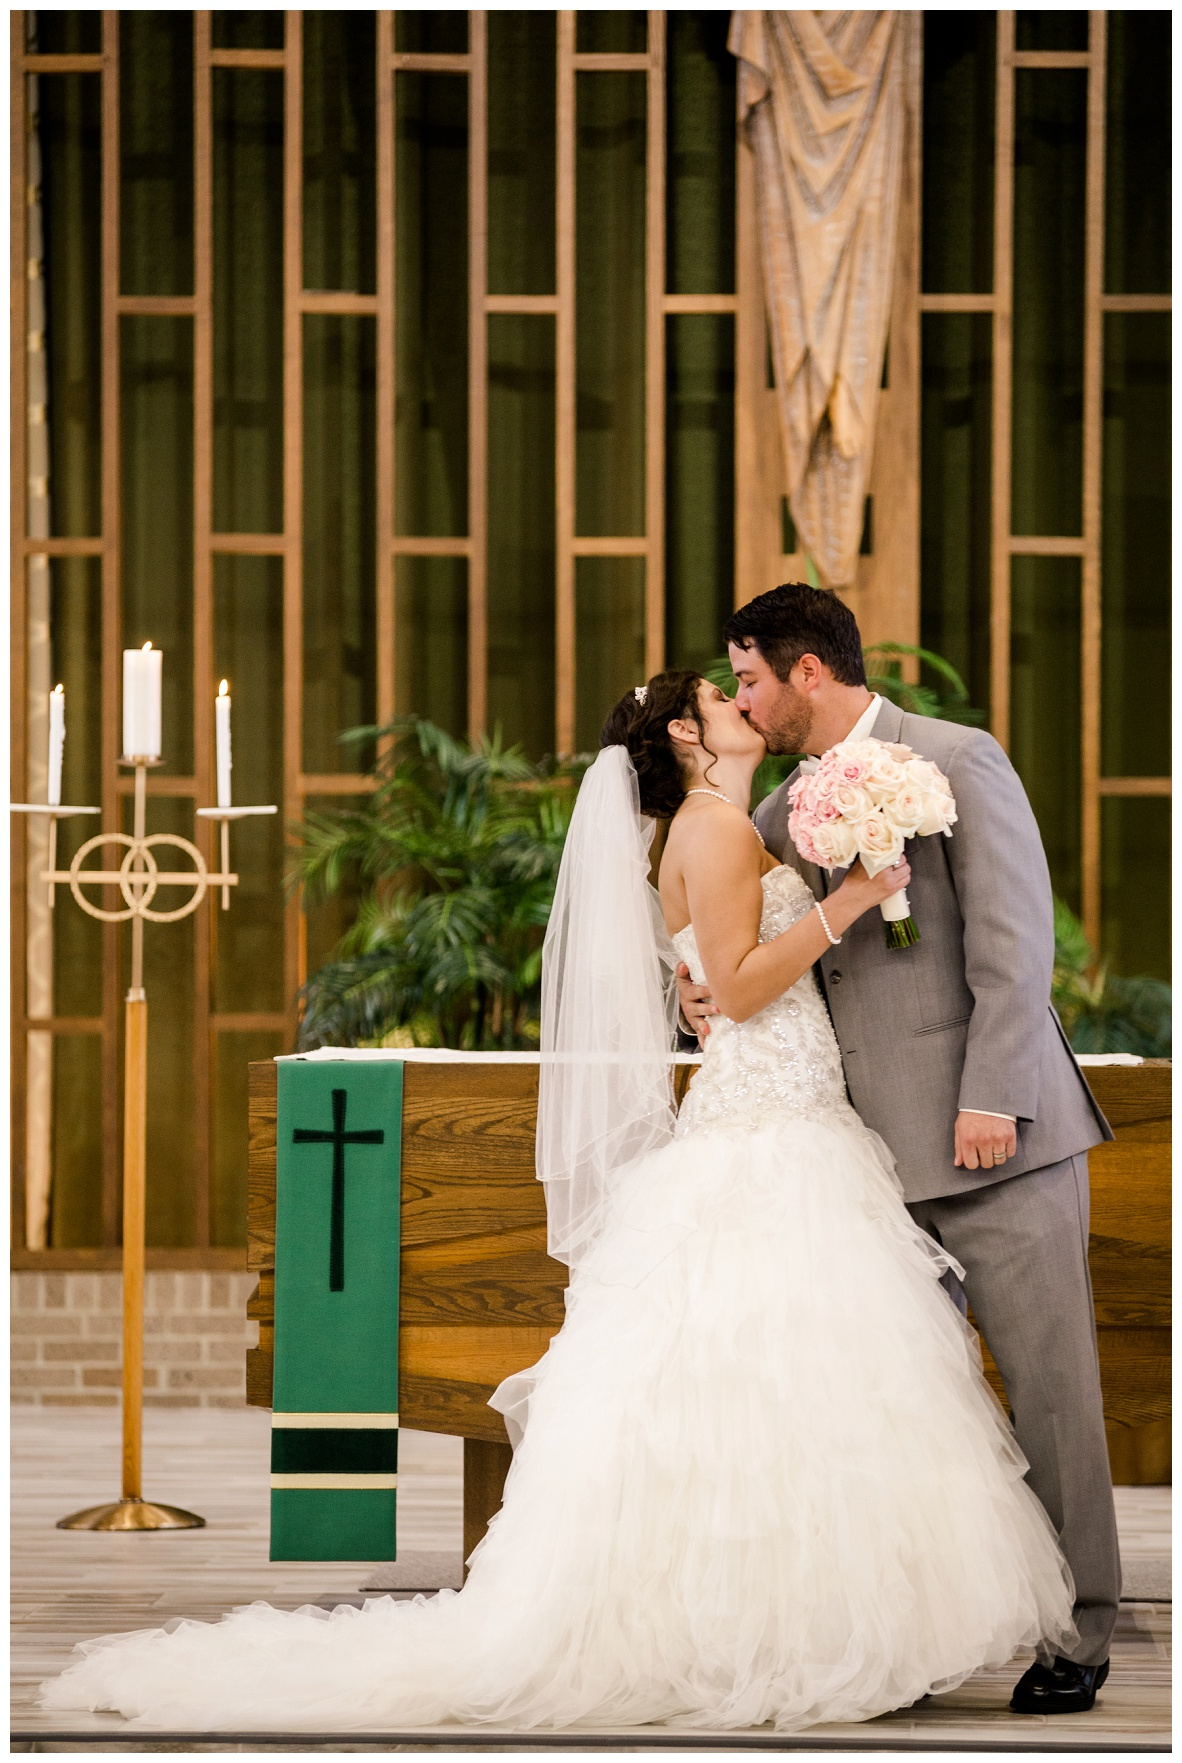 Mr. and Mrs. King_0033.jpg